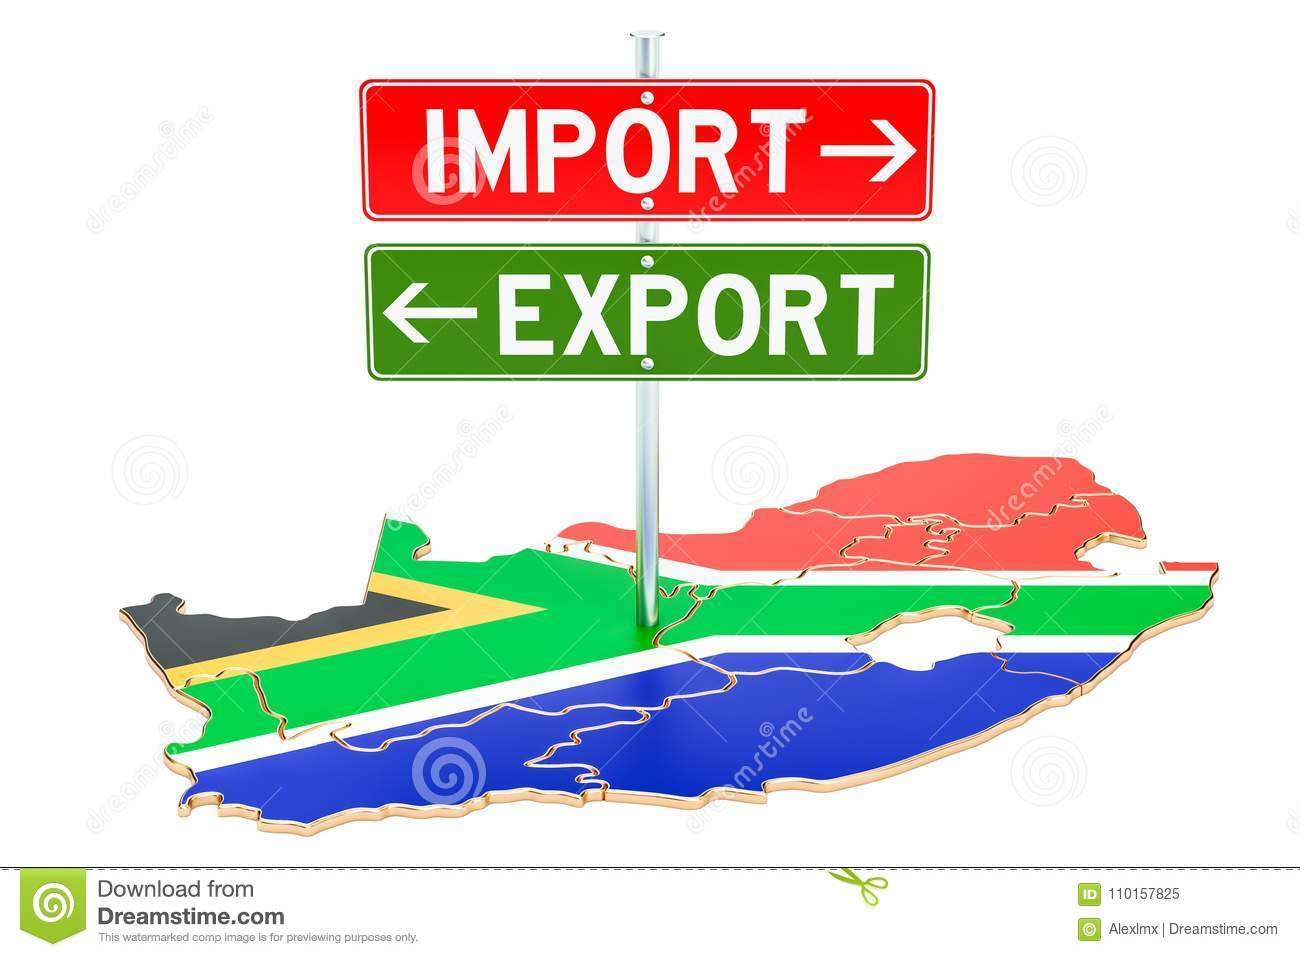 Import And Export In South Africa Concept, 3D Rendering